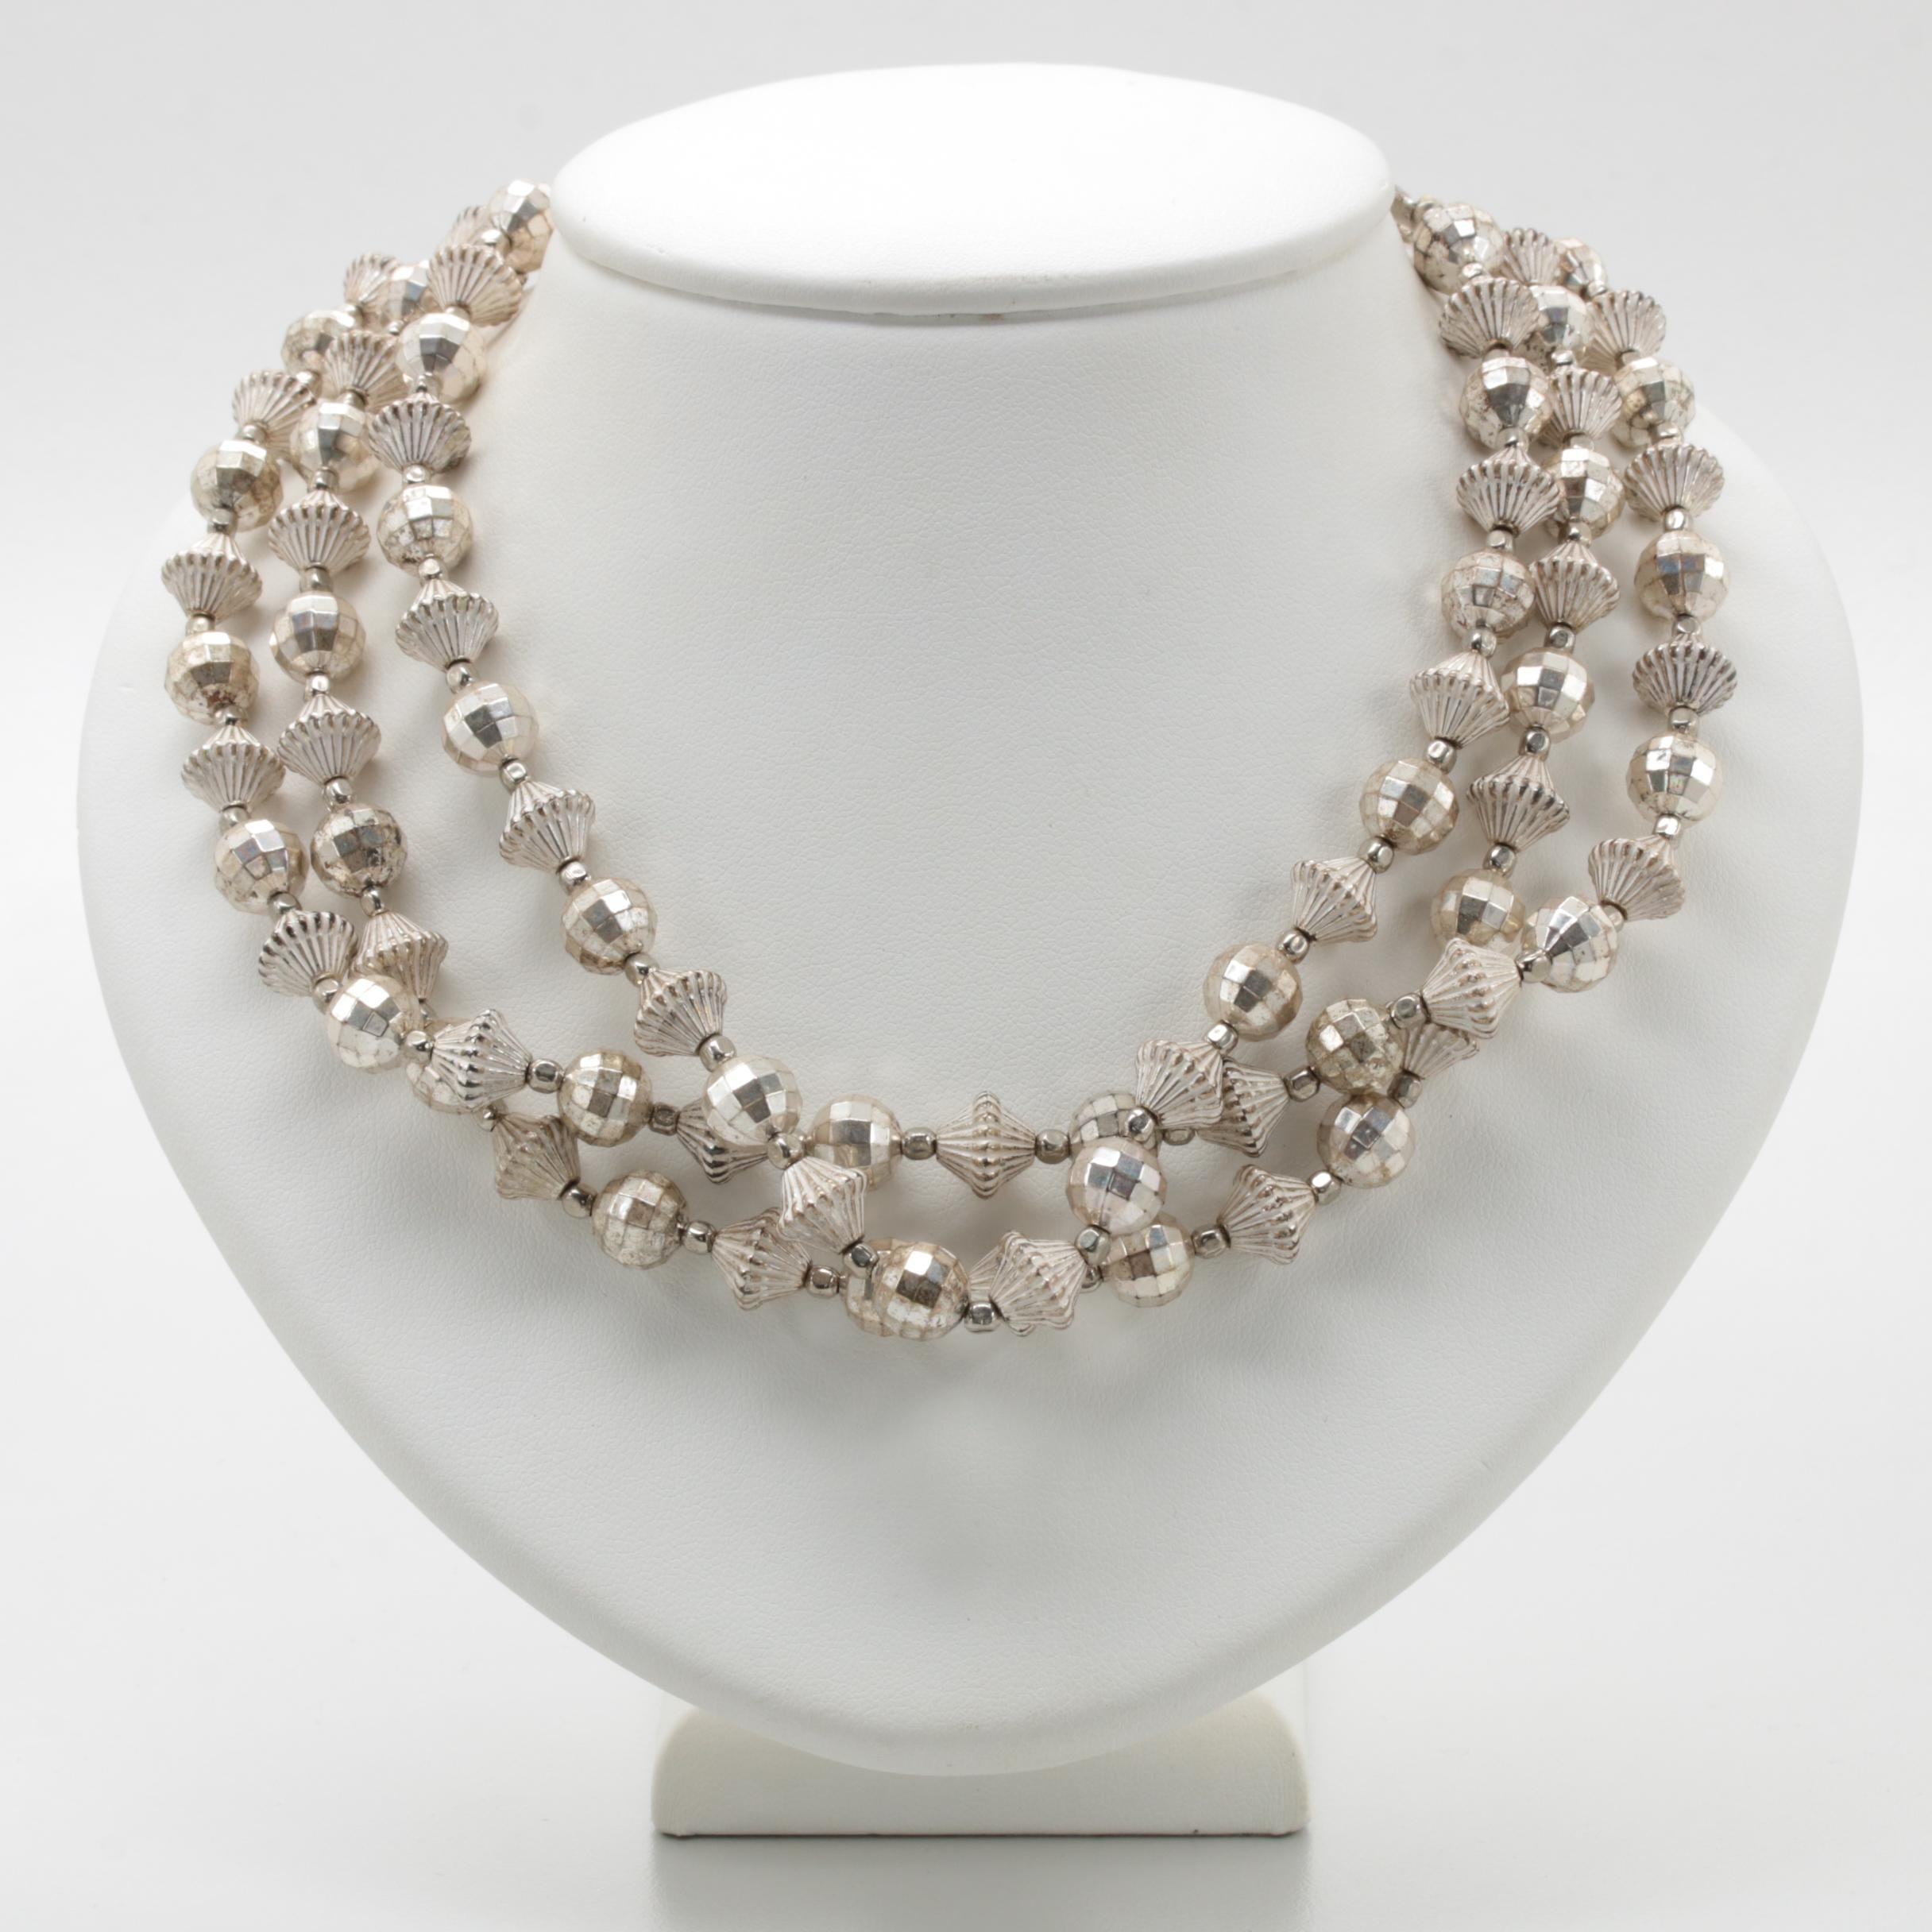 Vintage Style Silver Tone Multi Strand Bead Necklace